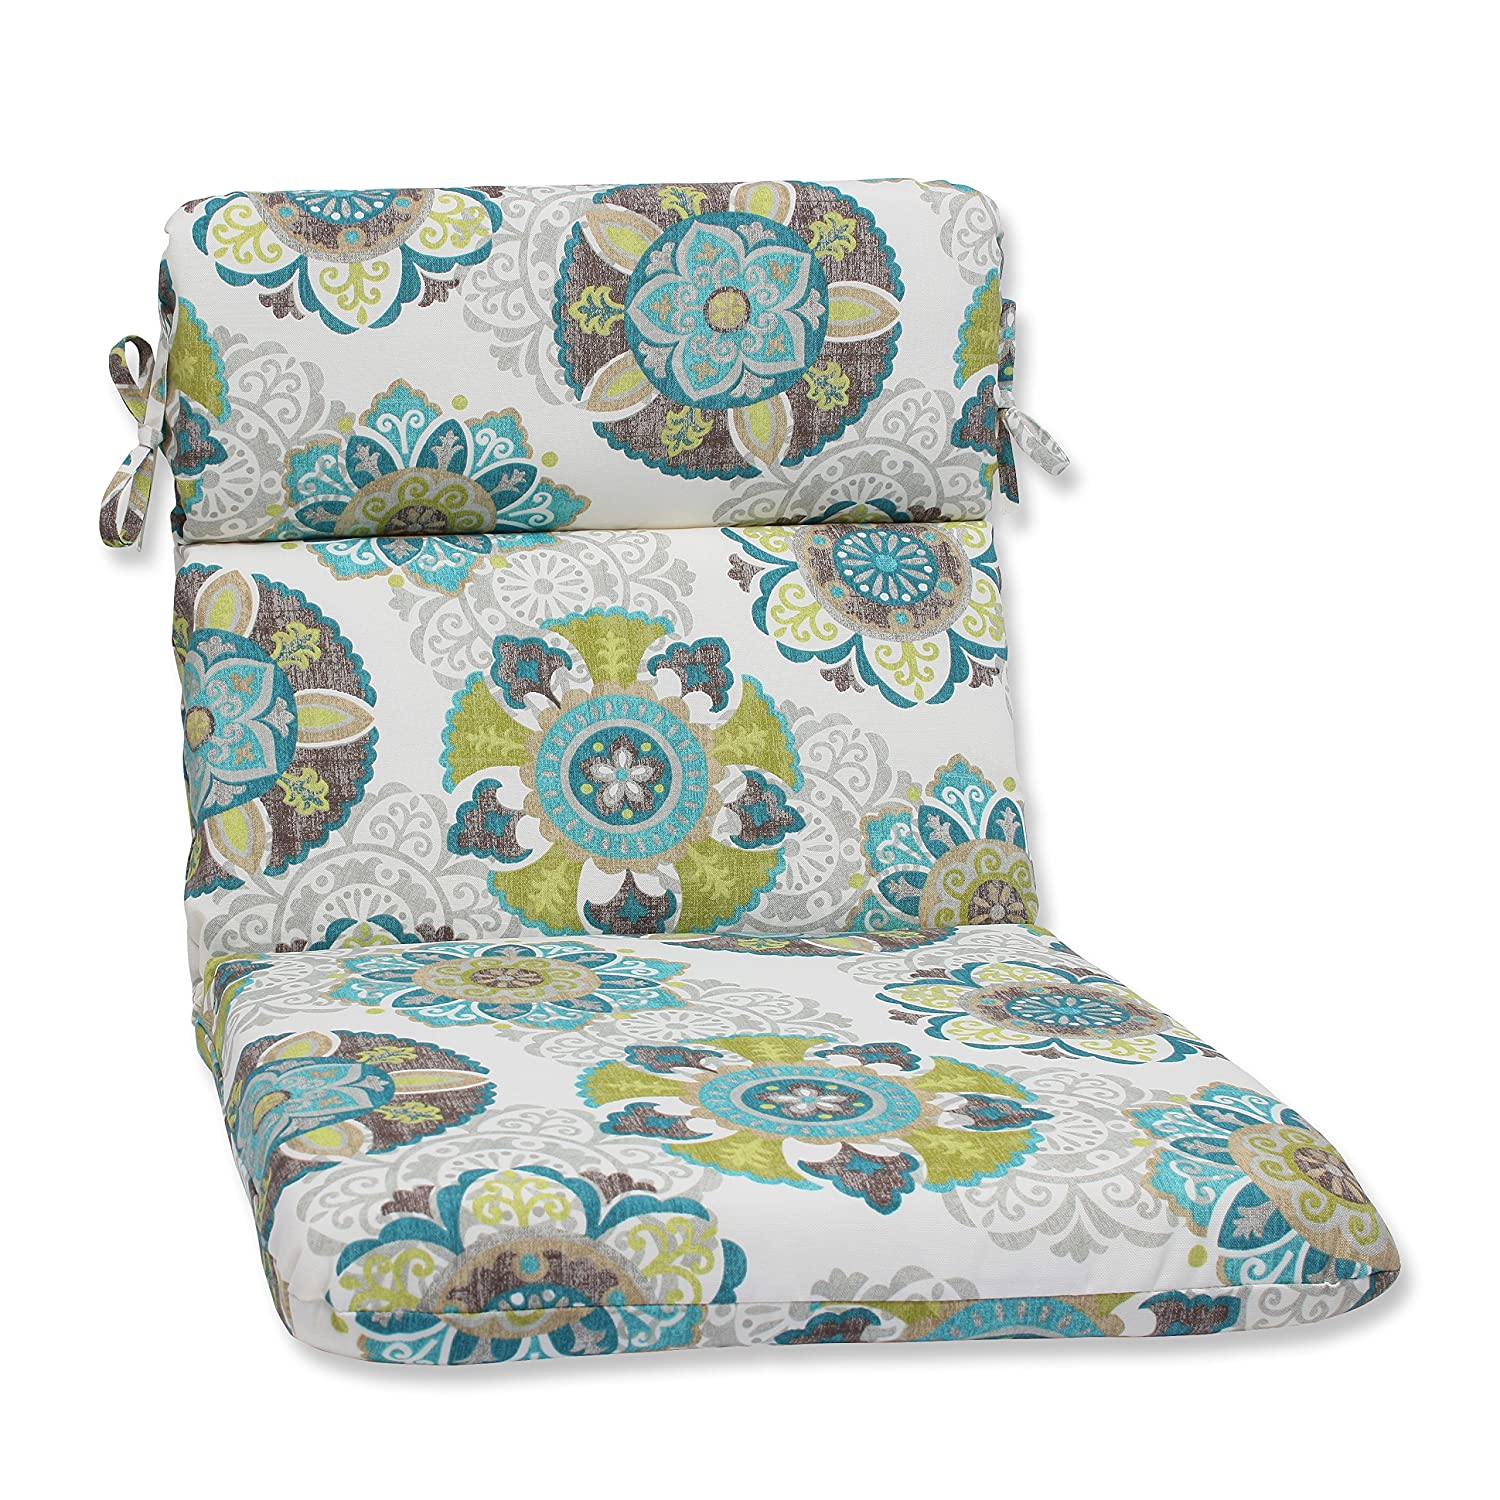 Pillow Perfect Outdoor Allodala Rounded Corners Chair Cushion, Oasis